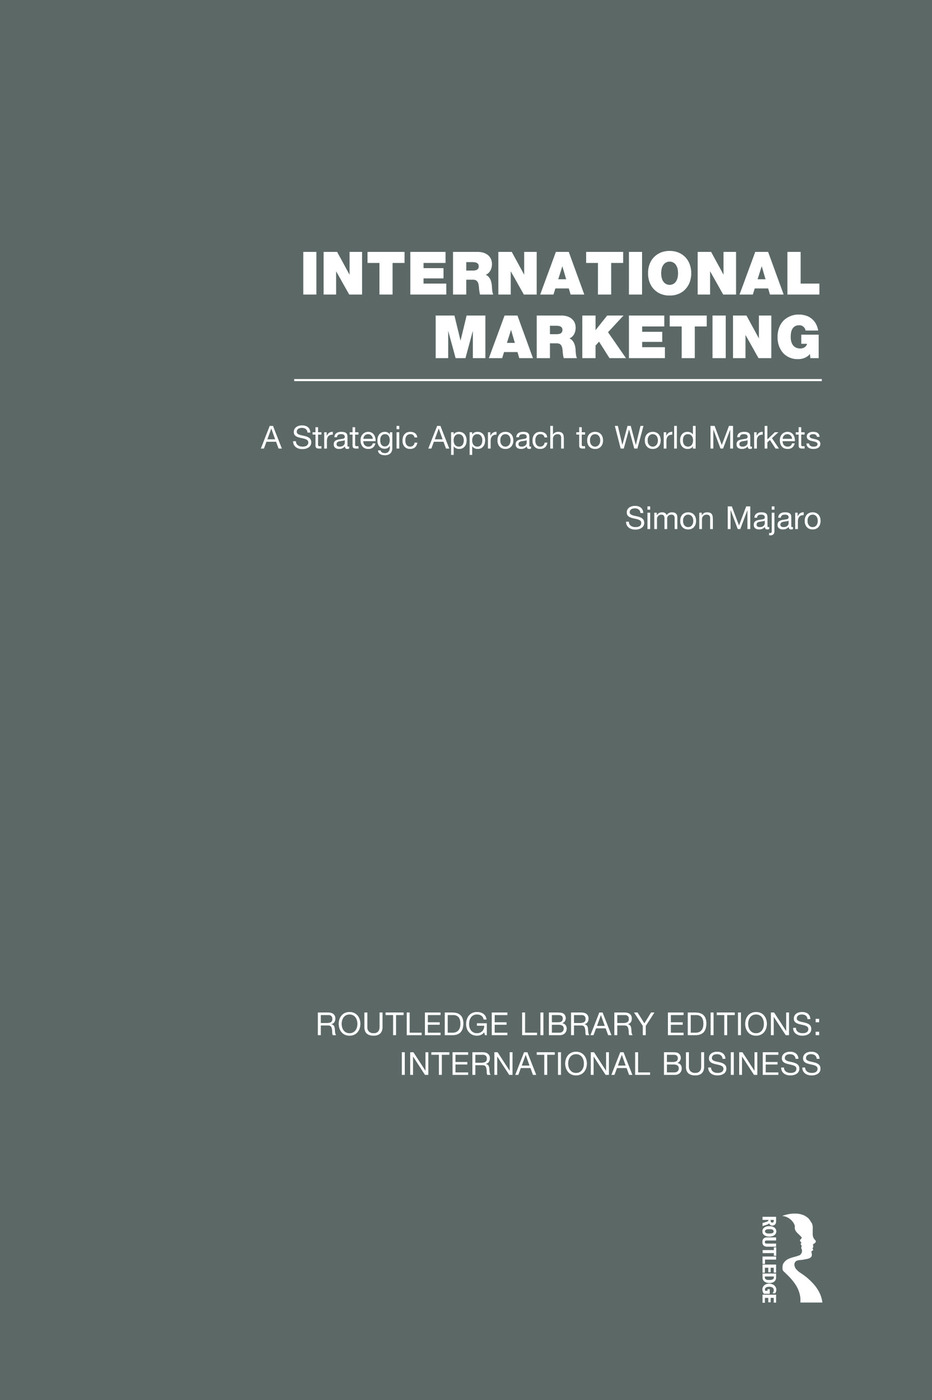 International Marketing (RLE International Business): A Strategic Approach to World Markets, 1st Edition (Paperback) book cover